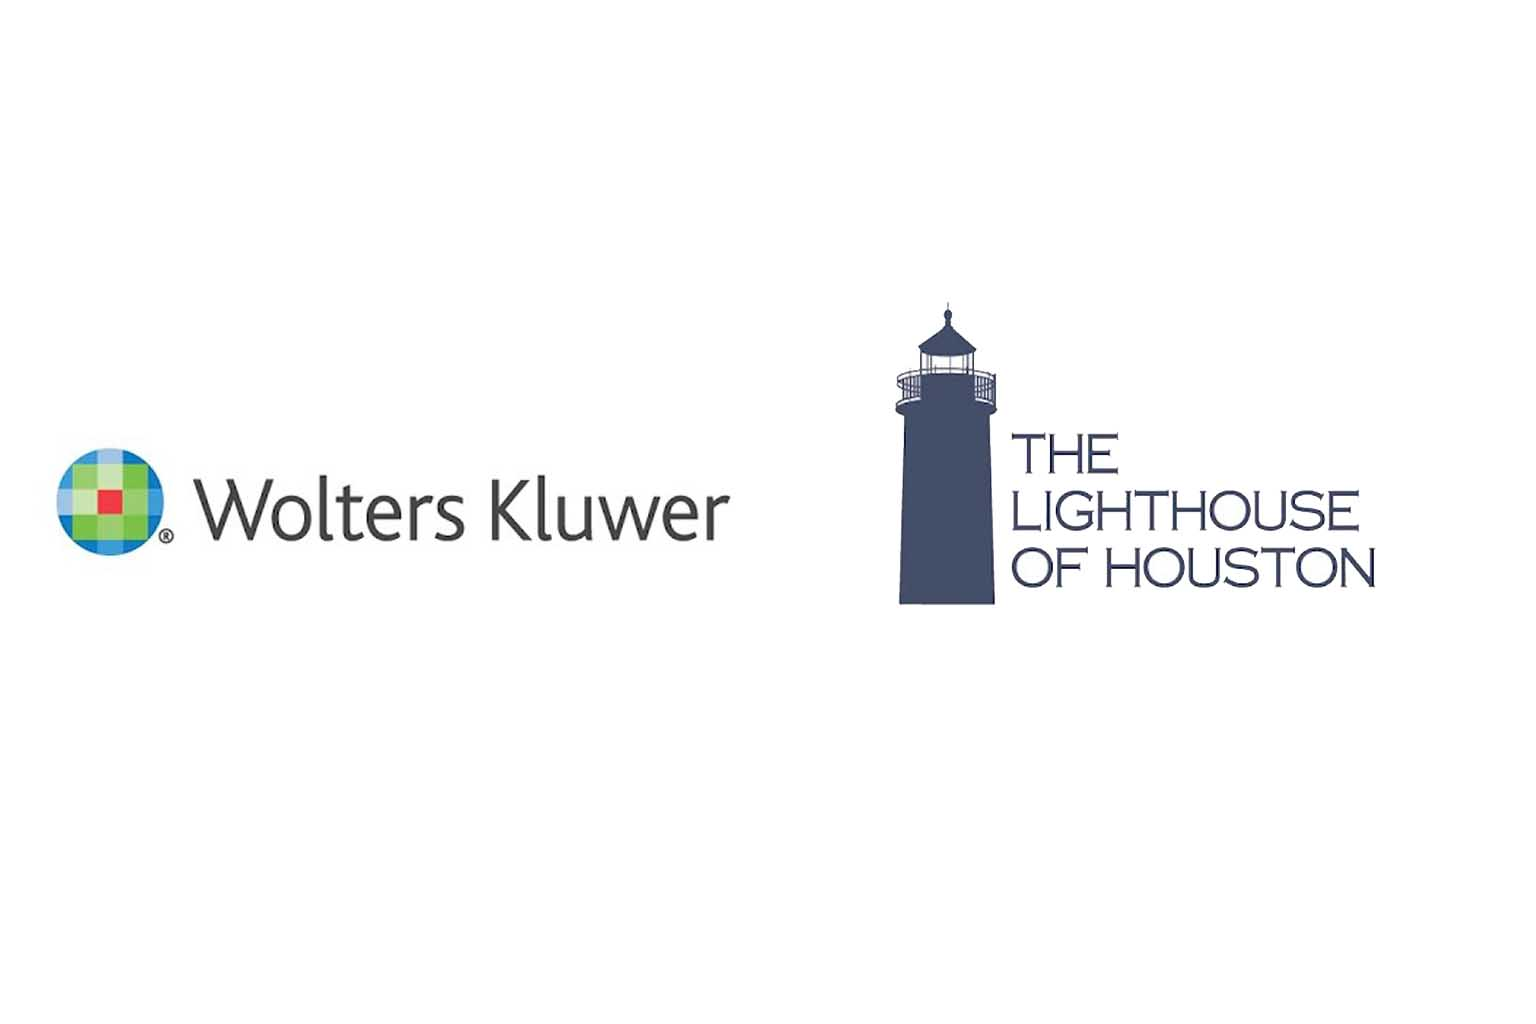 Wolters  Kluwer  and Lighthouse logos